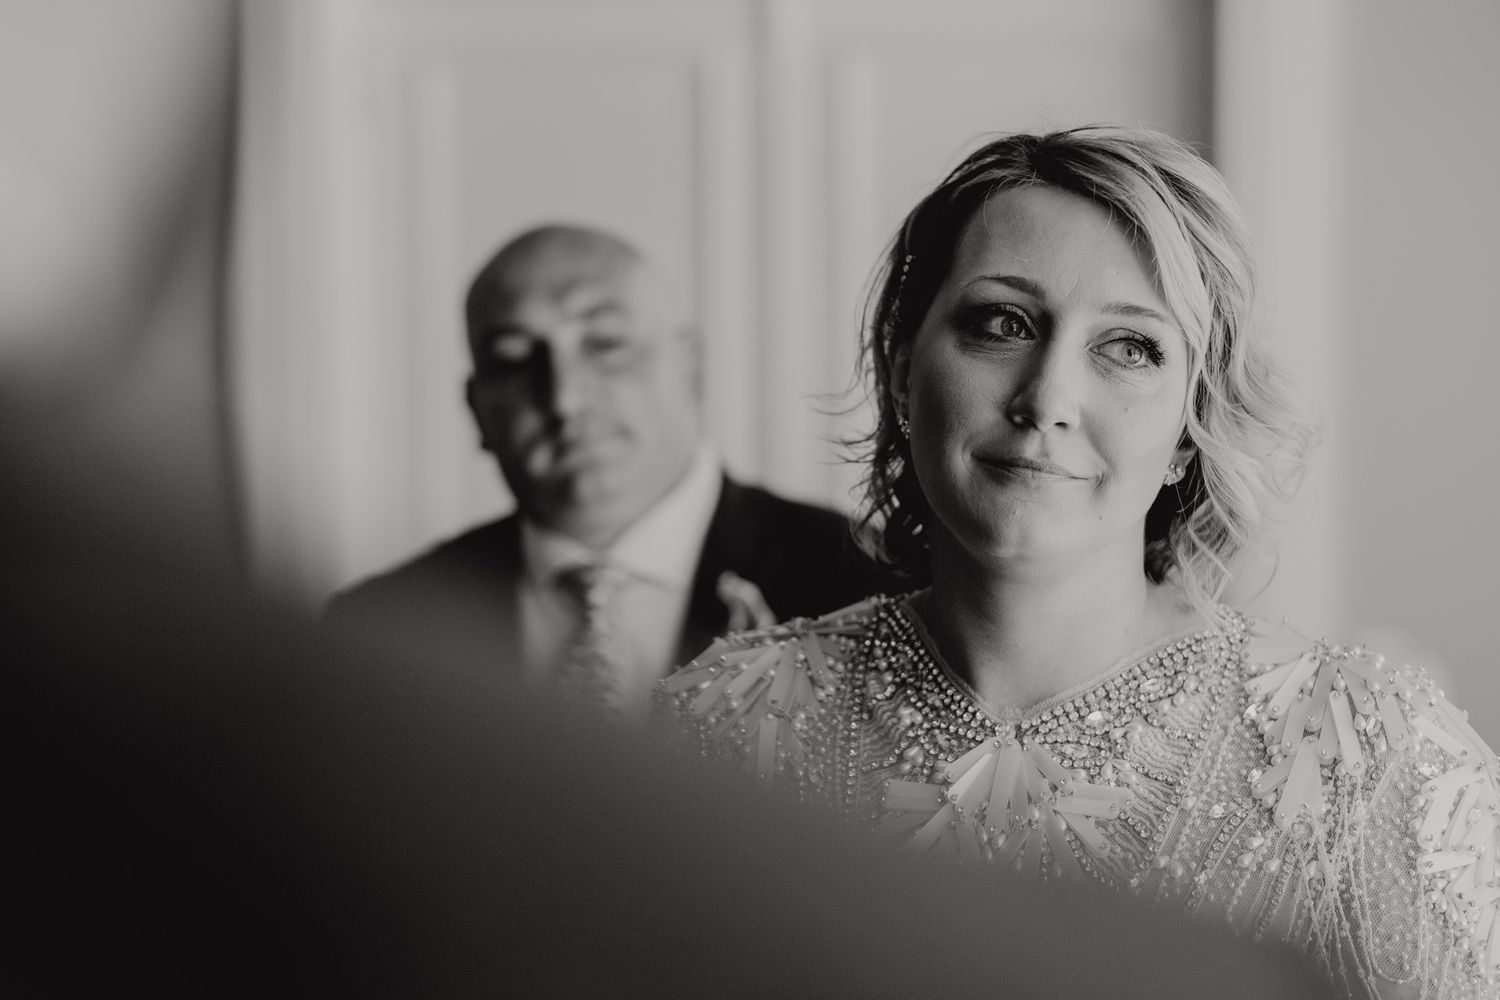 THE YEATMAN HOTEl WEDDING PHOTOGRAPHY